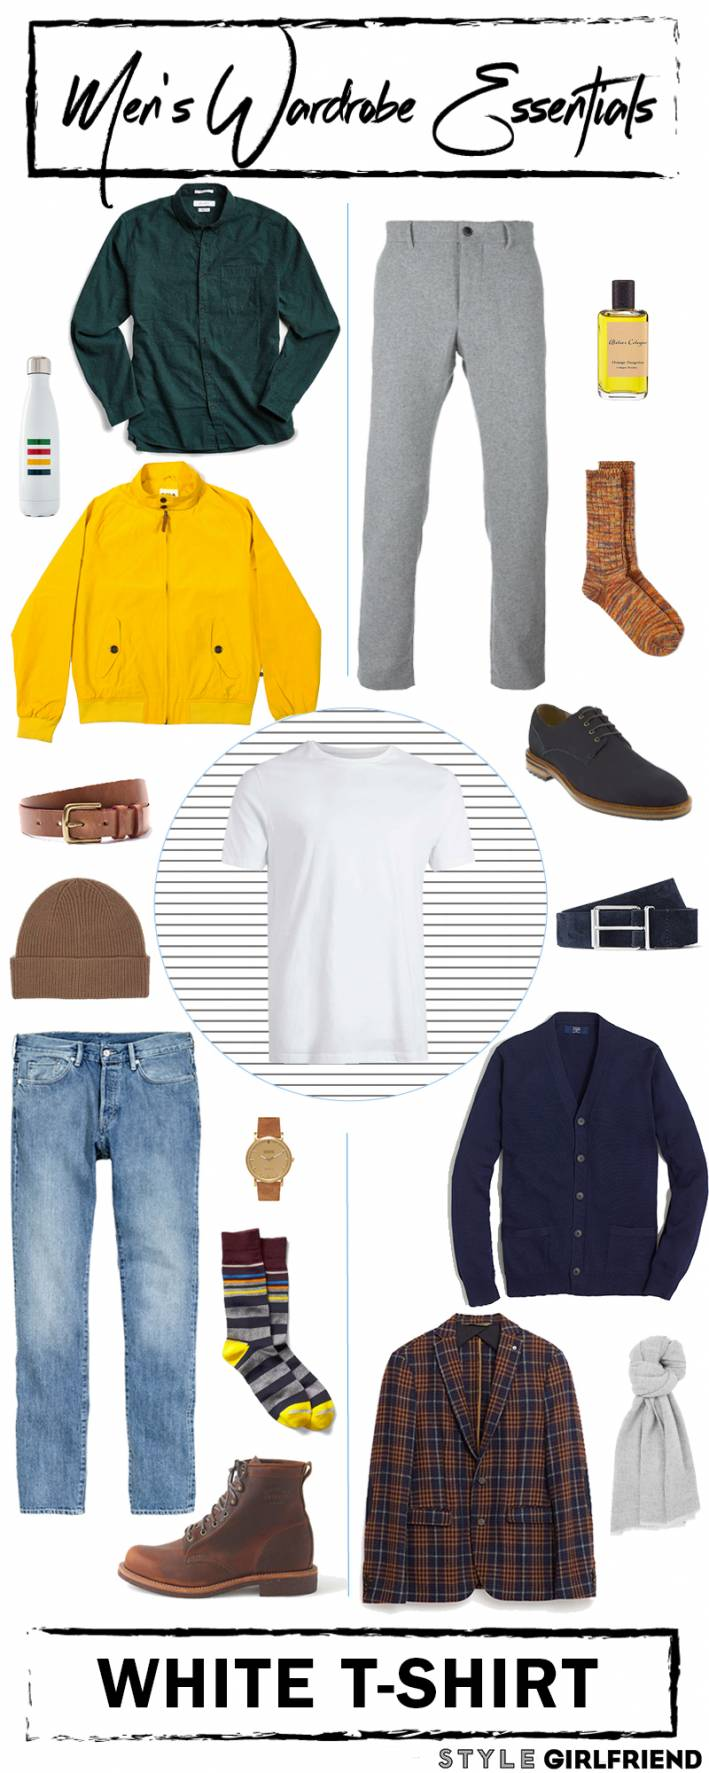 white t-shirt outfit, mens wardrobe essential, white t-shirt, wardrobe essentials, menswear, fall fashion,